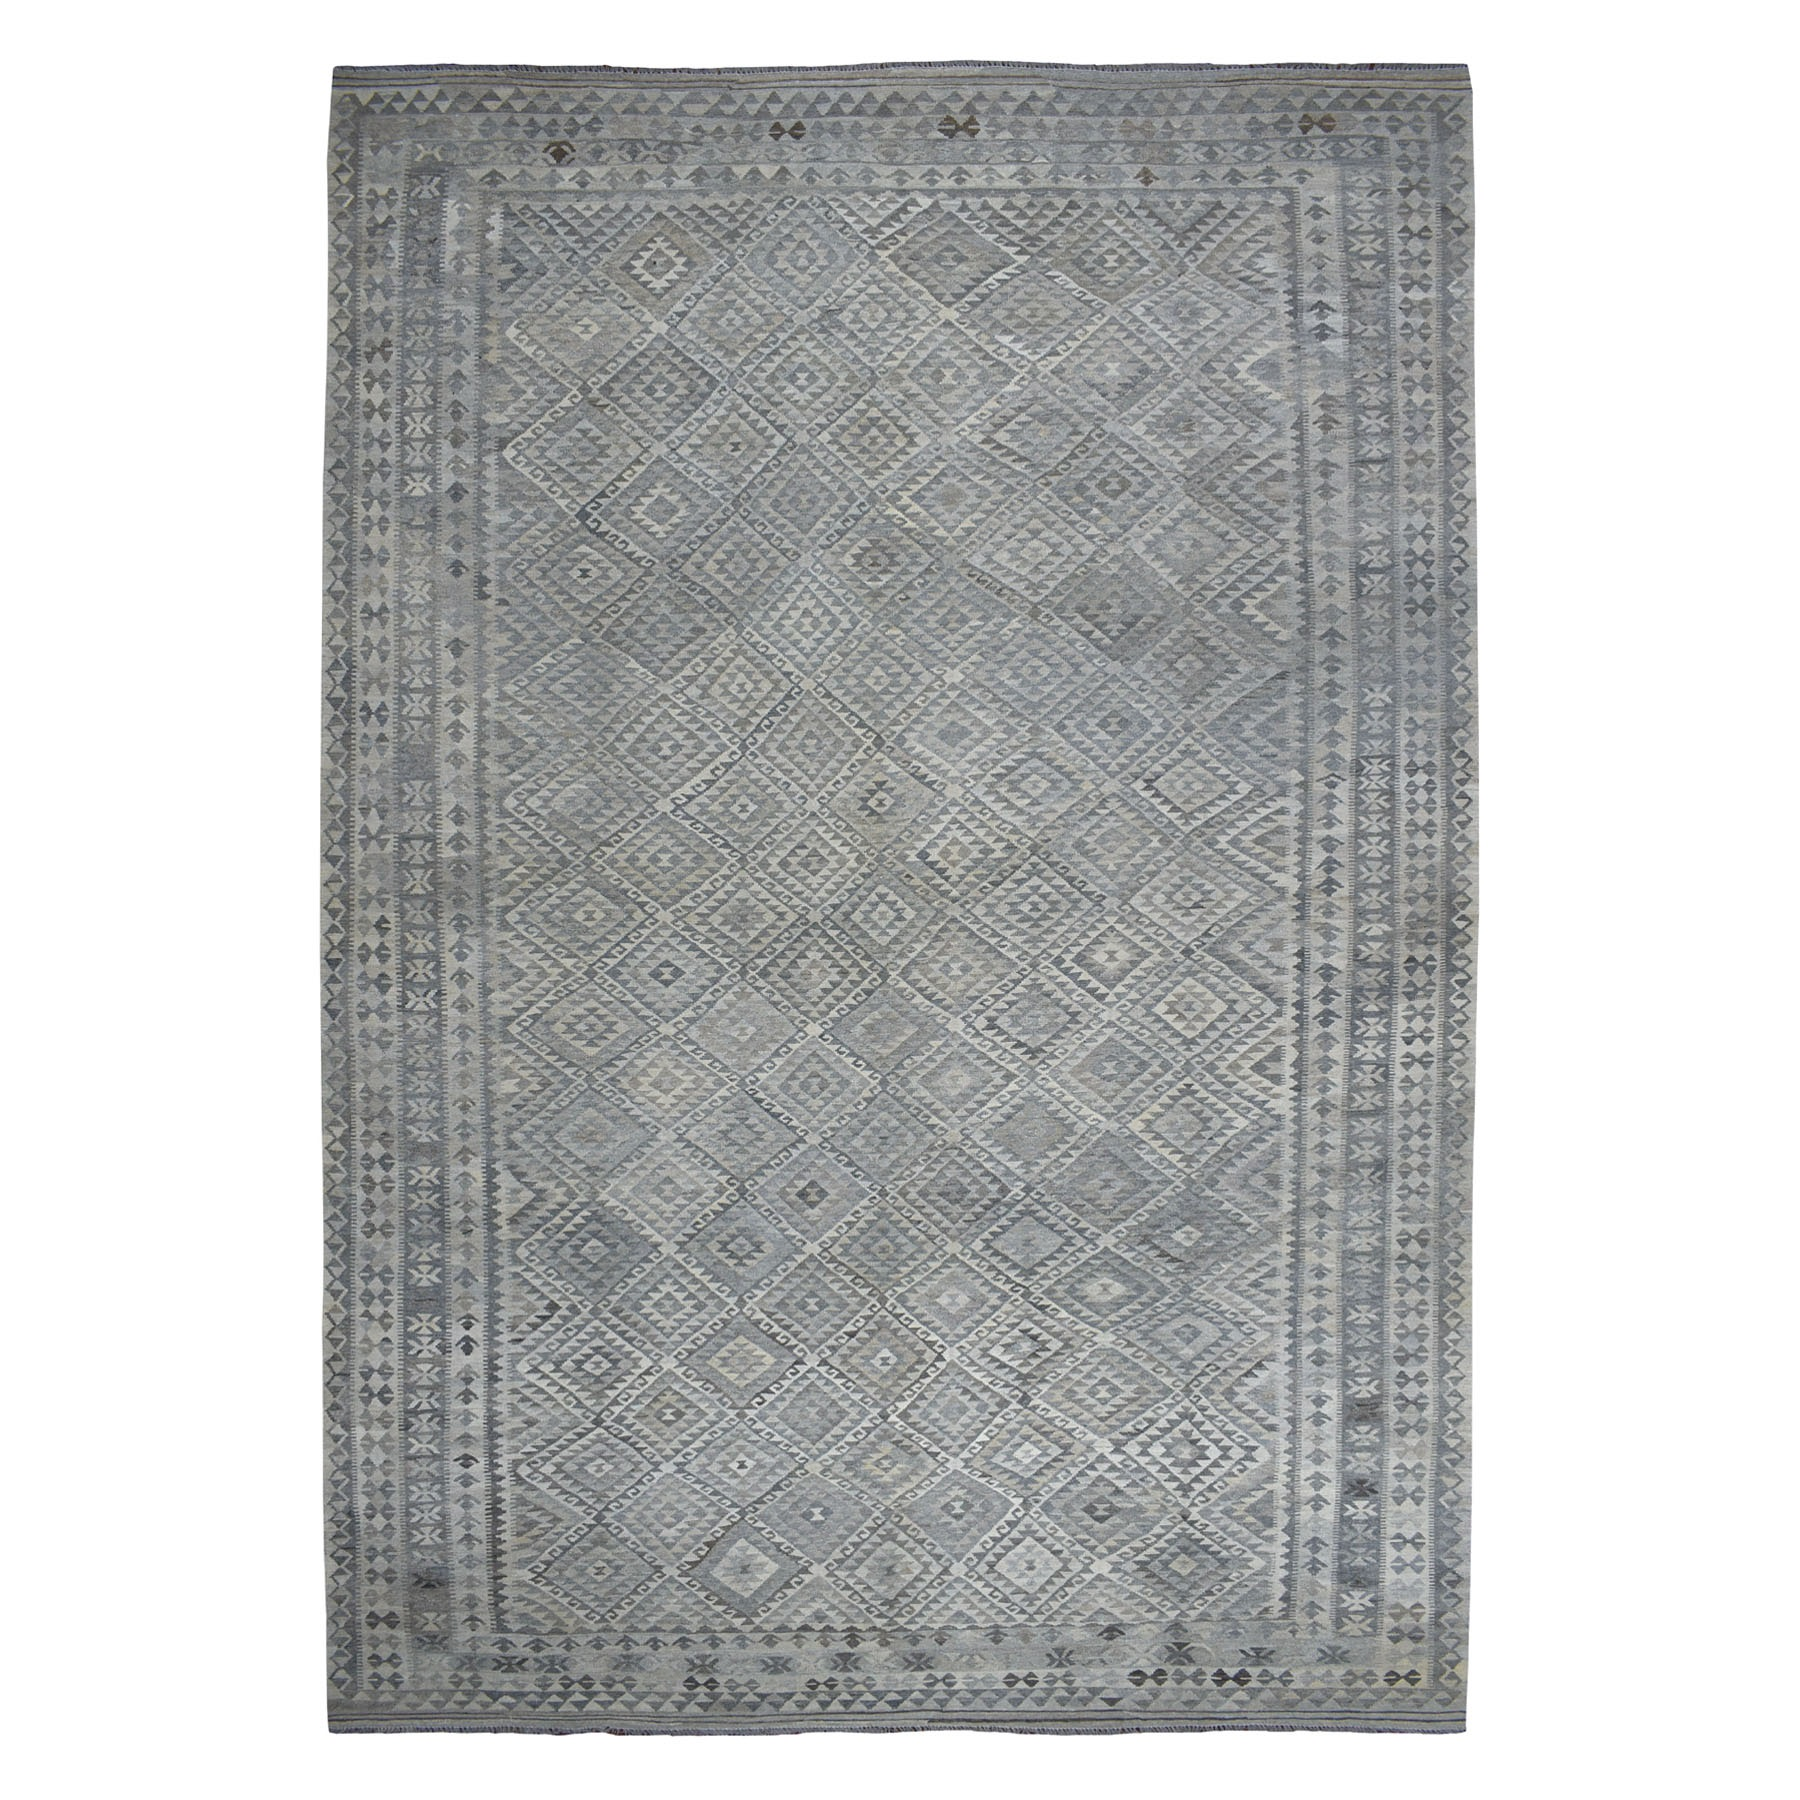 """9'9""""X16'4"""" Oversized Undyed Natural Wool Afghan Kilim Reversible Hand Woven Rug moaecdda"""